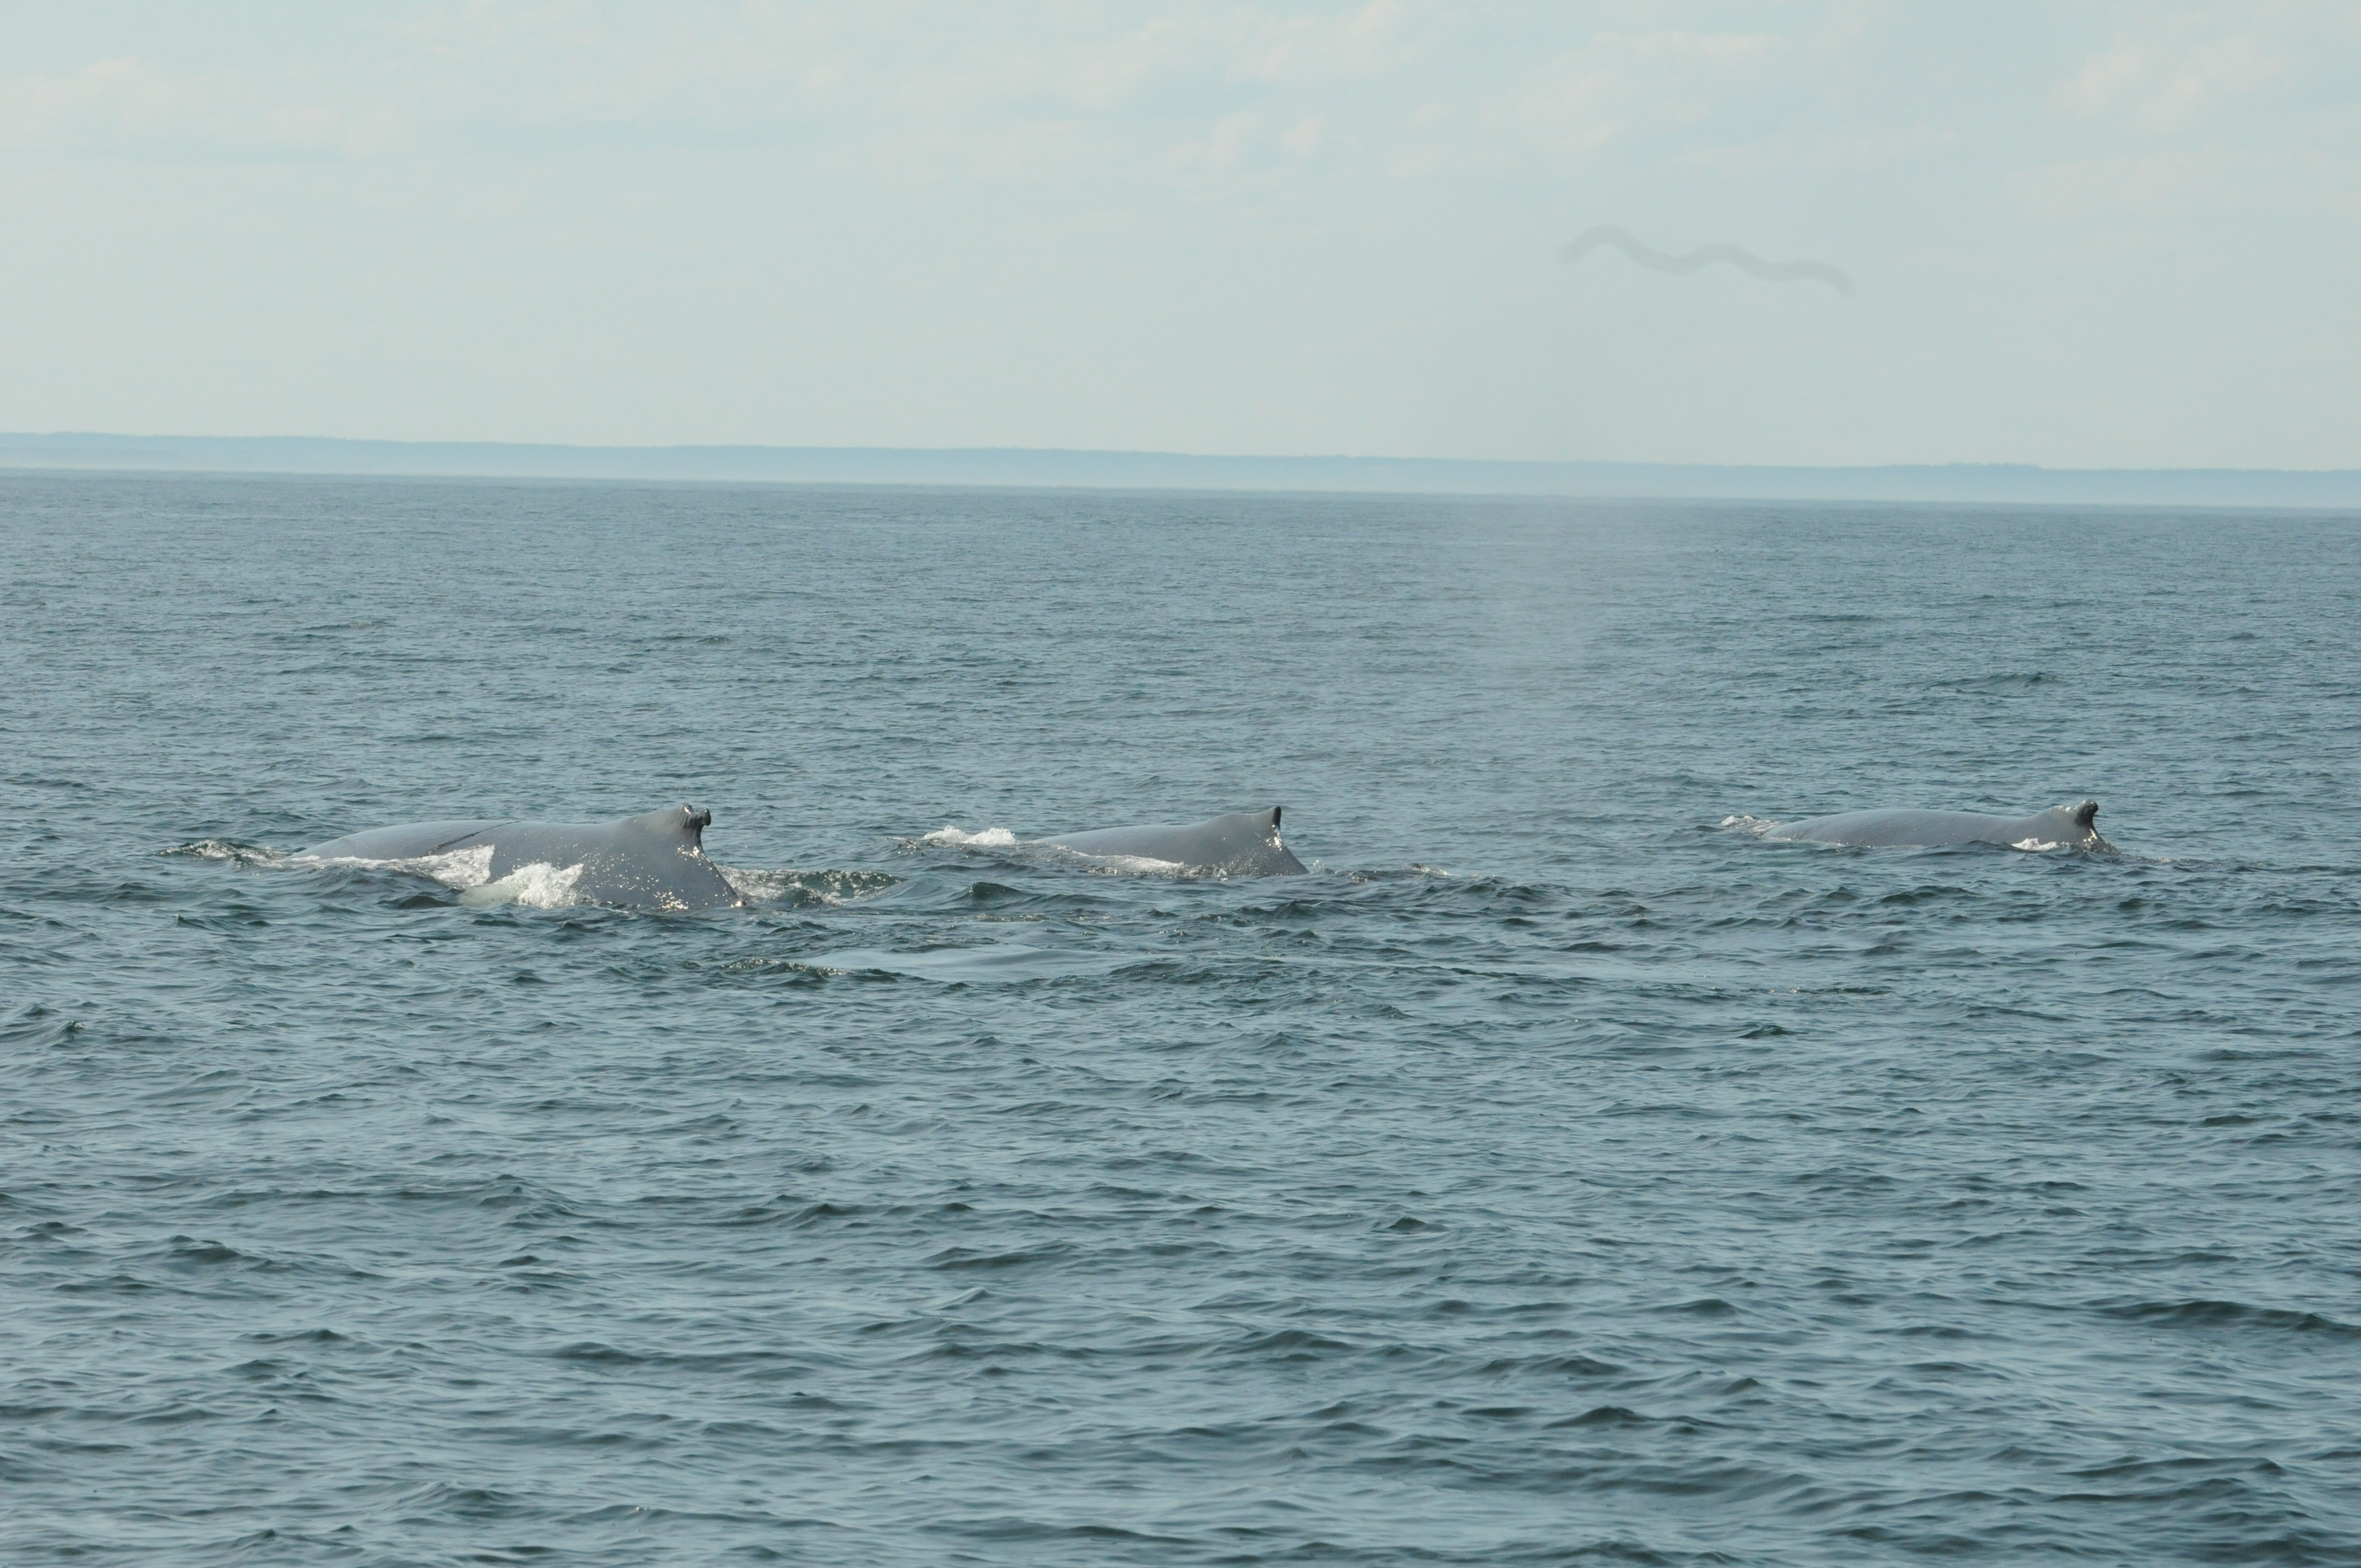 humpback whales in the bay of fundy